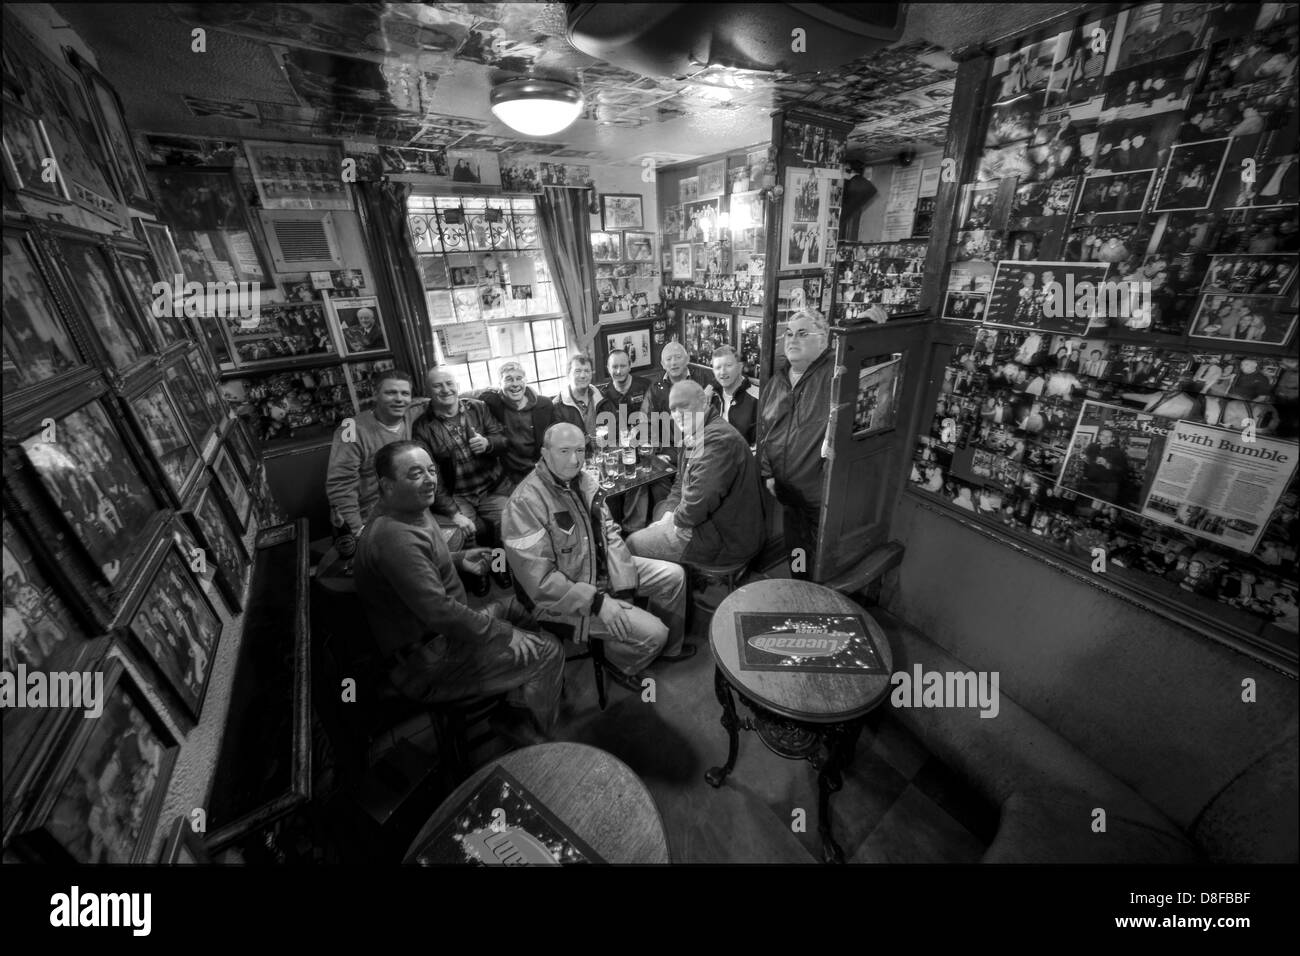 smallest,pub,in,the,city,England,UK,mono,b/w,black,white,pubs,bar,bars,CAMRA,campaign,for,real,ale,ales,beer,beers,tourist,destination,destinations,Tetley,Chinatown,Portland,st,street,86,Portland,m14gx,M1,4GX,inside,interior,lounge,saloon,seating,area,pictures,tables,Gotonysmith table picture photo photos,Buy Pictures of,Buy Images Of